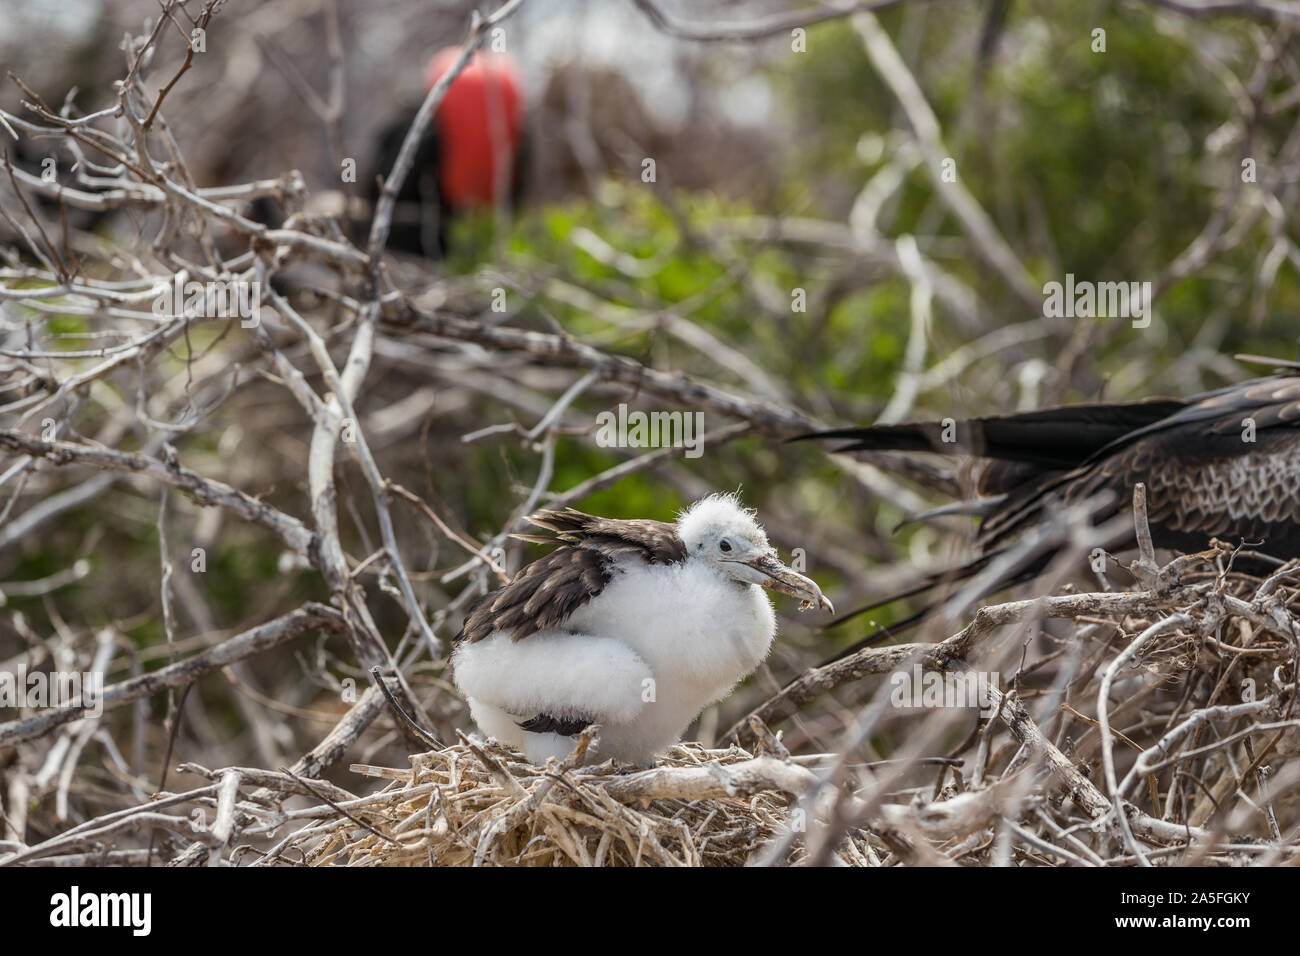 Frigatebird on Galapagos islands. Juvenile Magnificent Frigate-bird chick in birds nest, North Seymour Island, Galapagos Islands. Male frigate bird with inflated red neck gular pouch in background Stock Photo